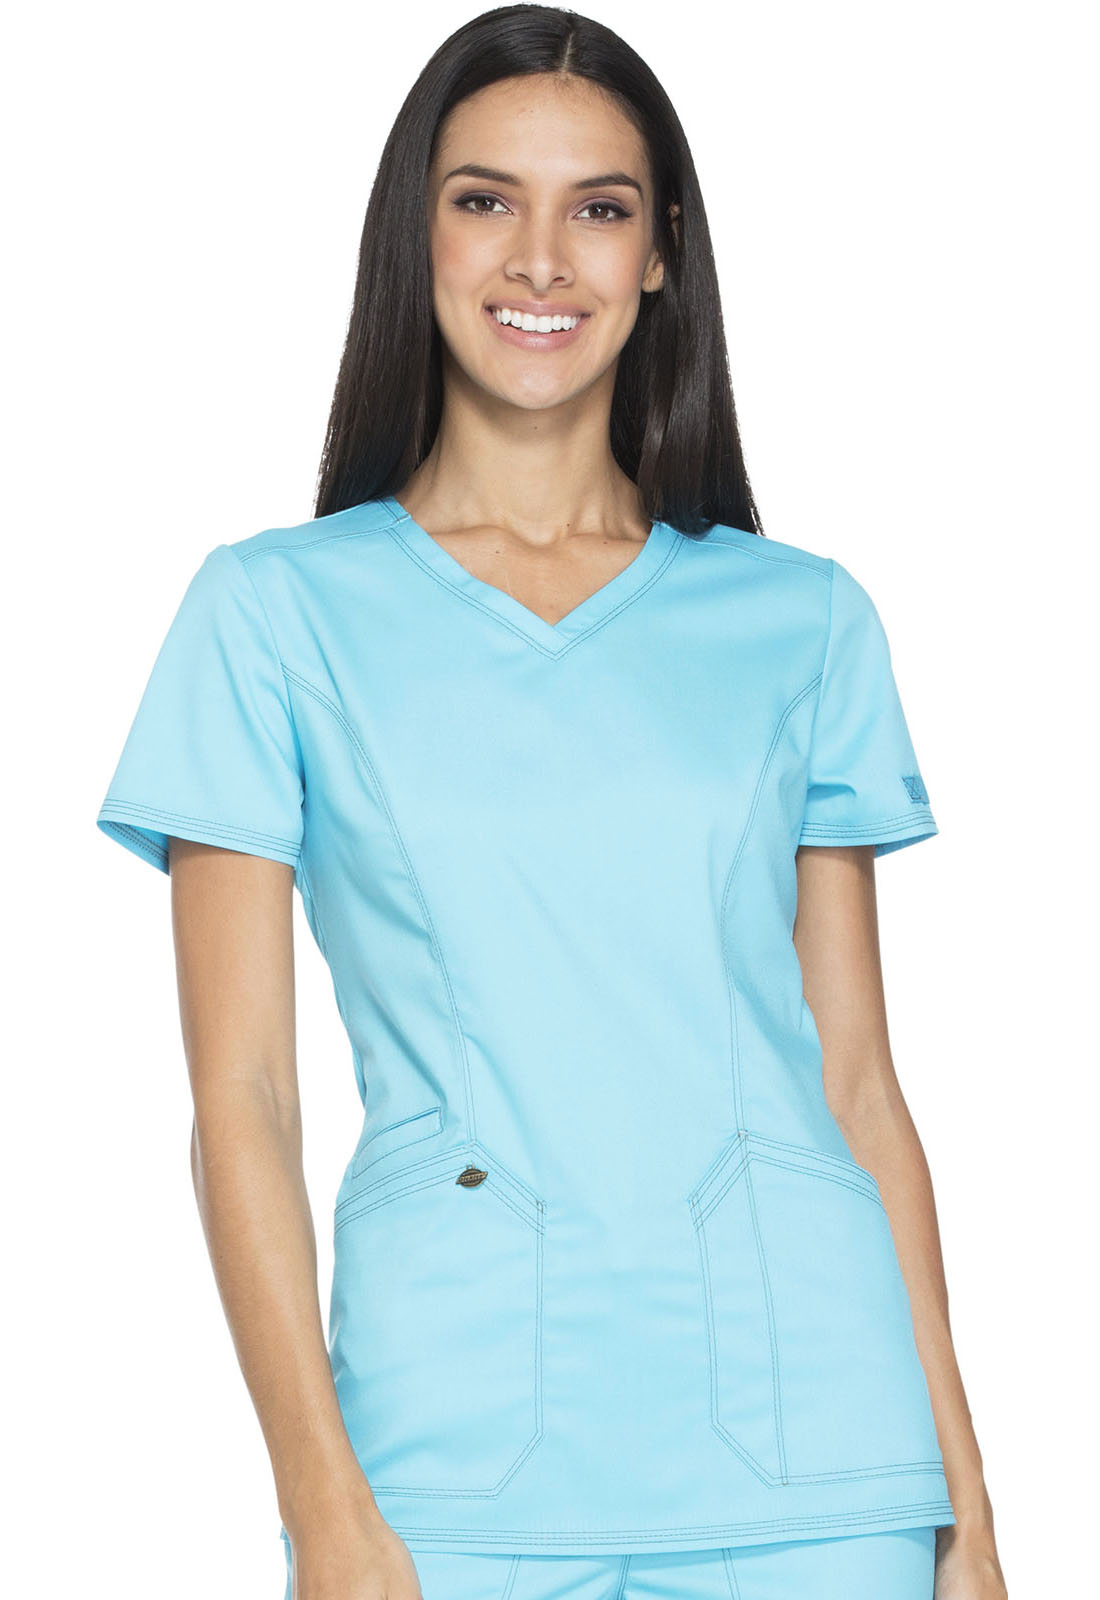 90aab956 Dickies Essence V-Neck Top DK803-TRQ from ScrubFit Quality Medical ...